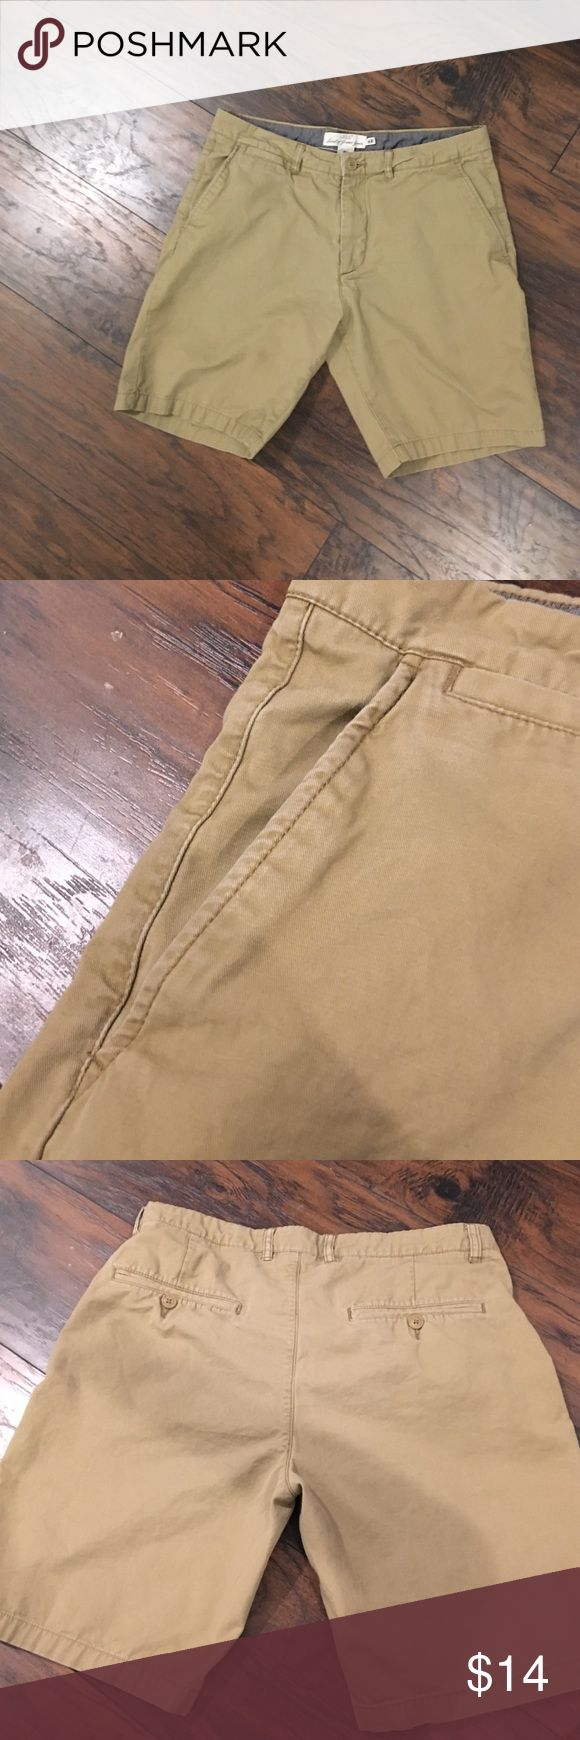 tan men's short shorts decently short, very nice shape and fit l.o.g.g. Shorts Cargo